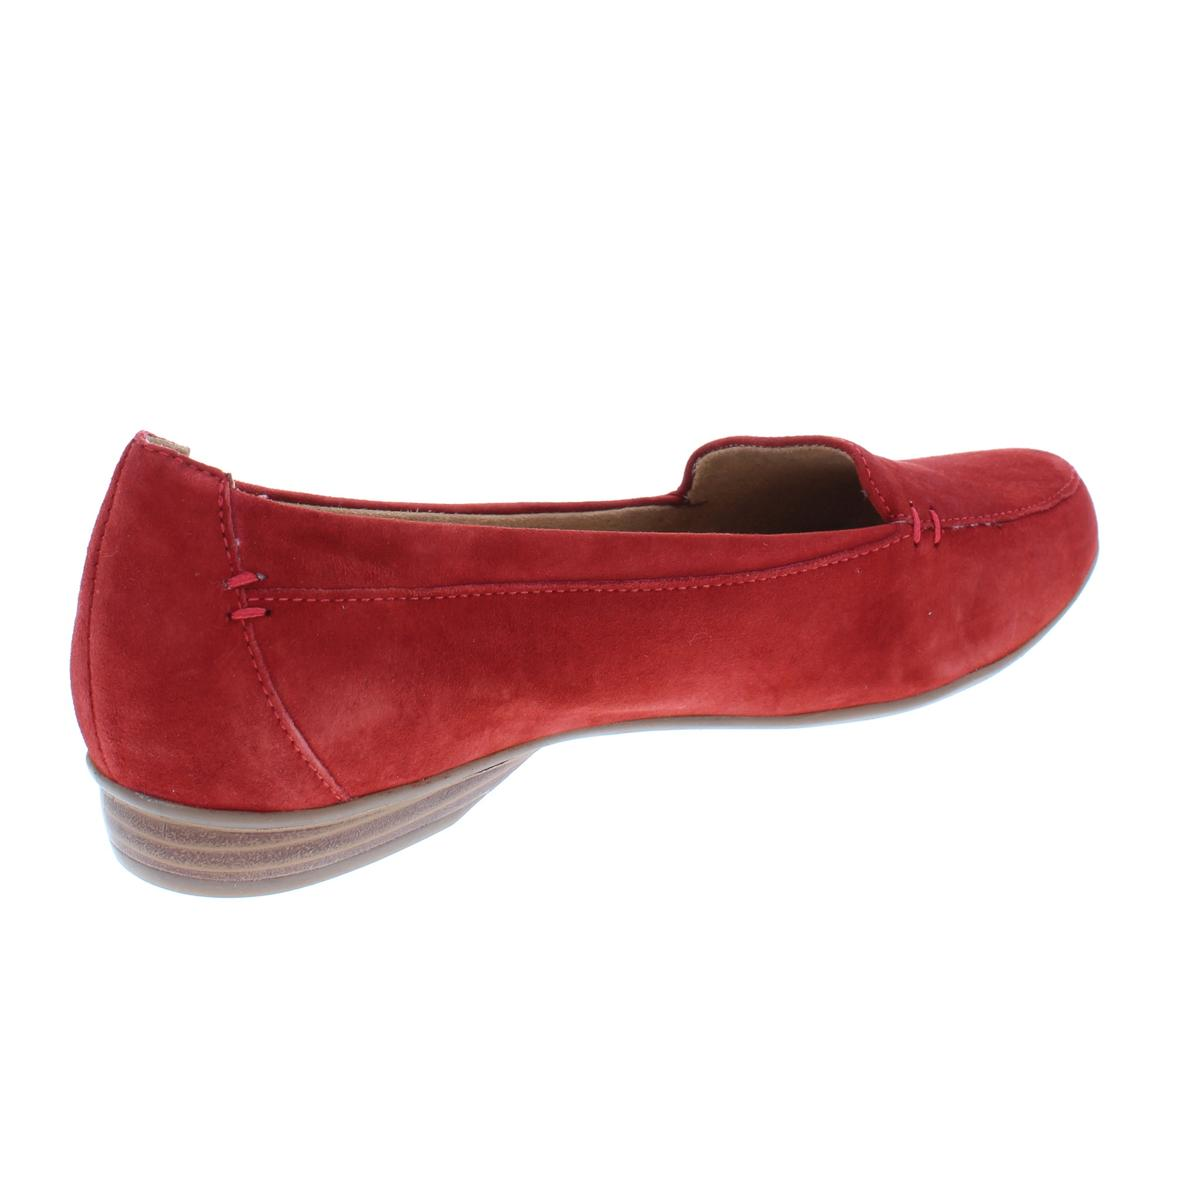 Naturalizer-Womens-Saban-Solid-Round-Toe-Casual-Loafers-Shoes-BHFO-1181 thumbnail 12